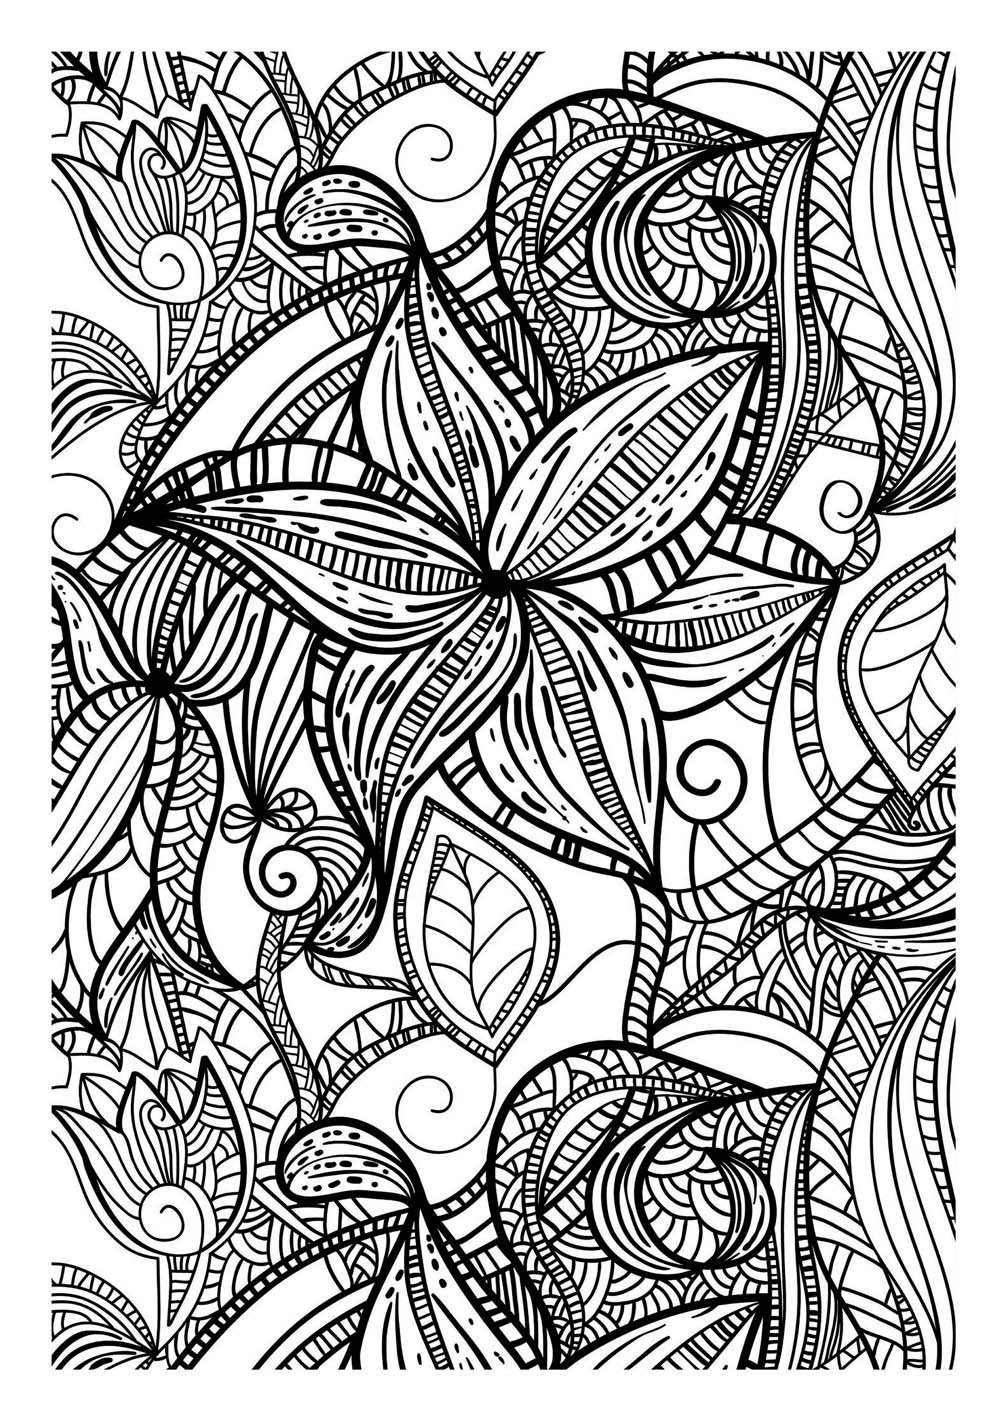 moreover  additionally coloriage adulte paysage 14694 besides Doodle Invasion Zifflins Coloring Book Fish Dog Artwork Abstract moreover Pisces Tattoos Design Photo moreover design seamless geometric pattern vector art 32713147 further coloriage renard et roses style tatouage together with  as well  in addition  in addition . on tribal printable complex coloring pages for adults